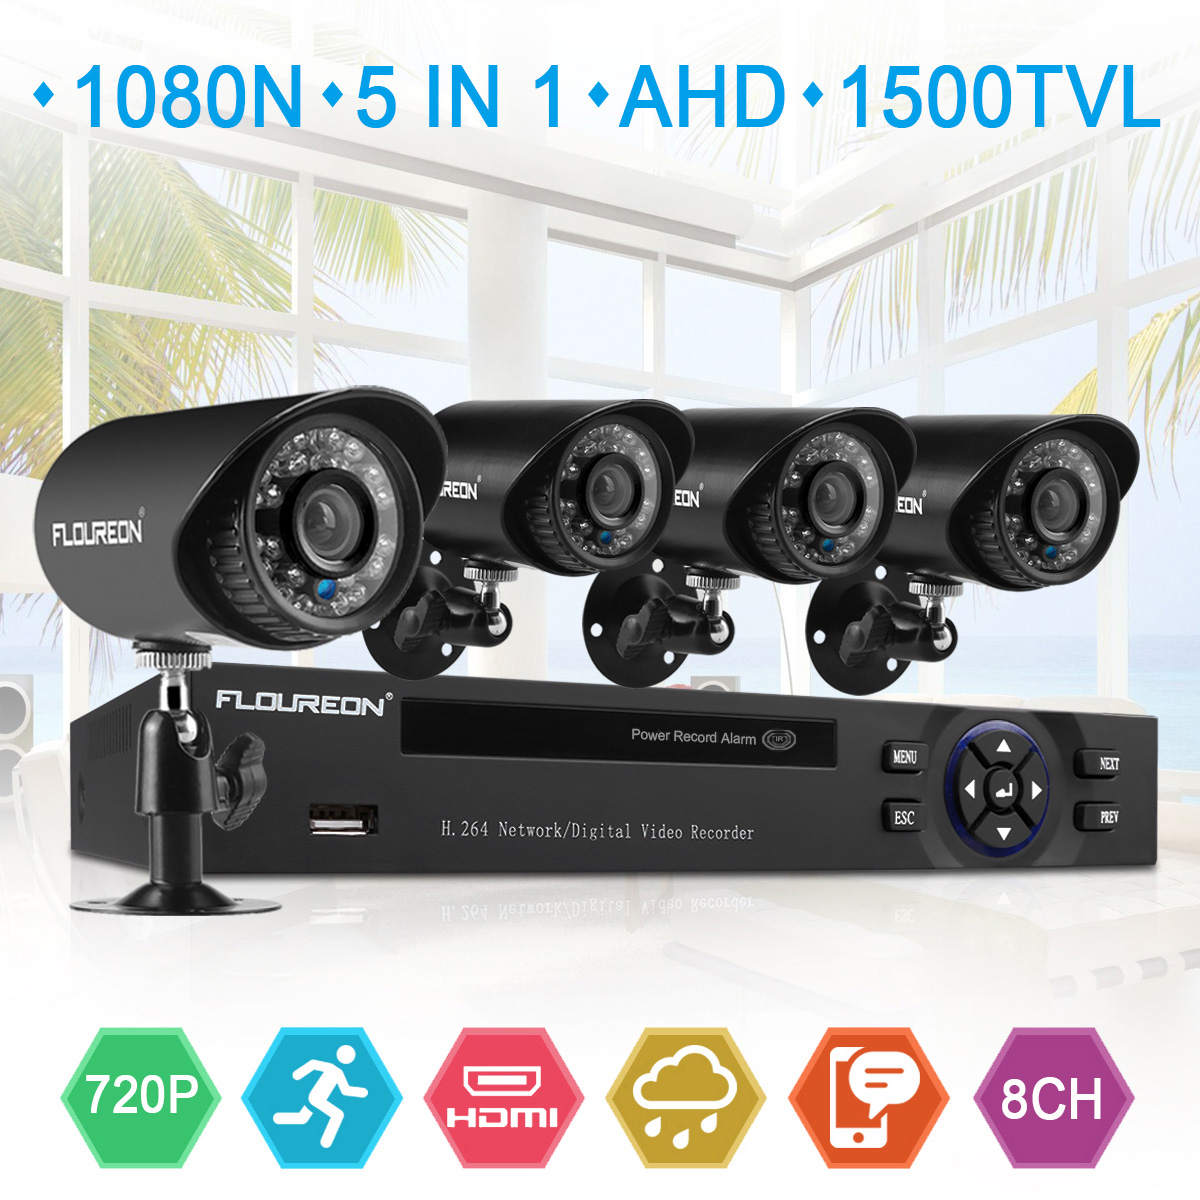 Floureon 8-Channel HD 1080N Security Camera System DVR and (4) 1.0MP Indoor/Outdoor Weatherproof Bullet Cameras with IR Night Vision LEDs, Remote Access (No HDD)